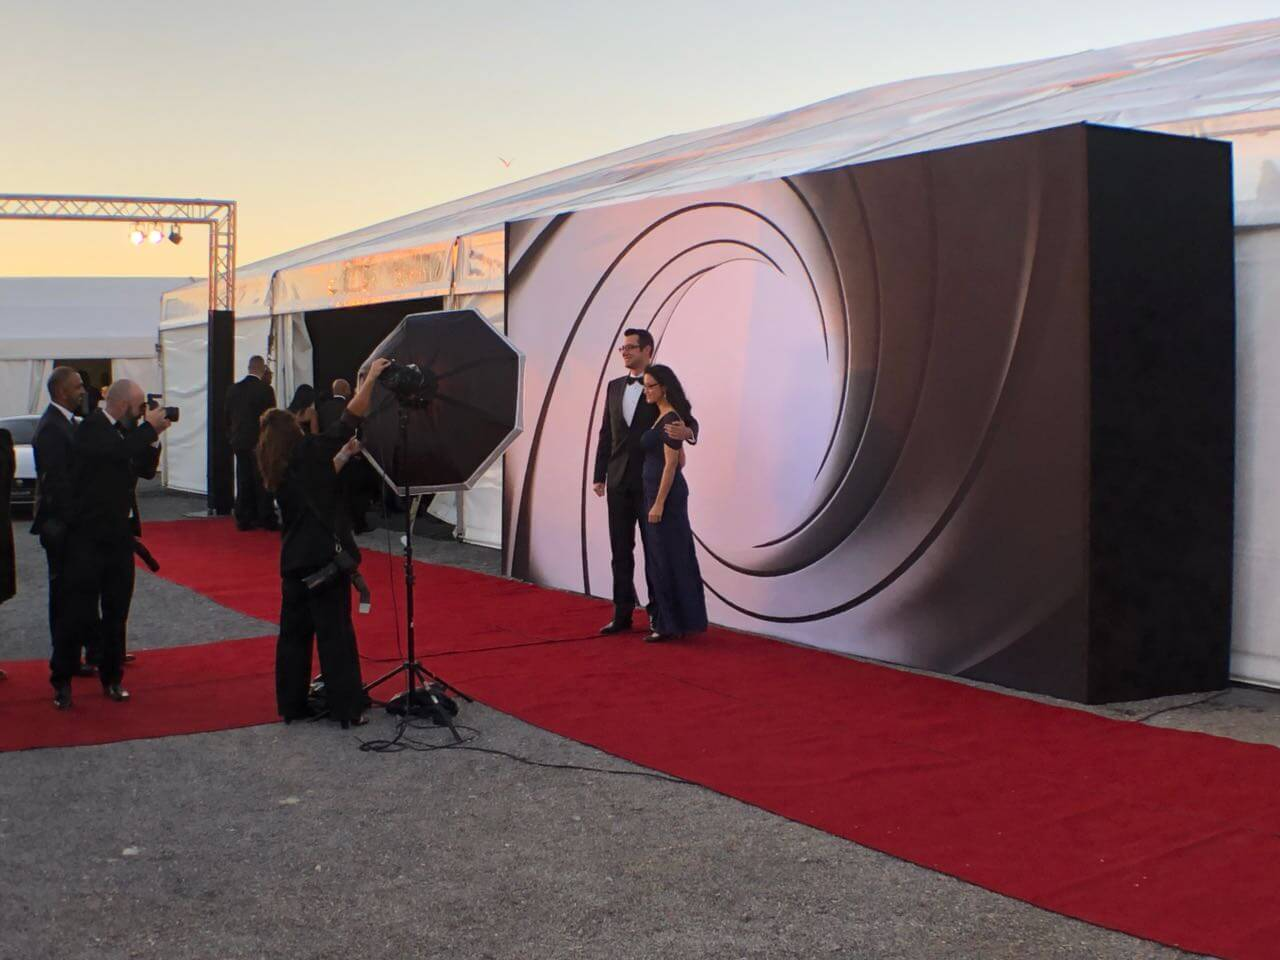 truss lighting, red carpets, photo wall - bond av direct